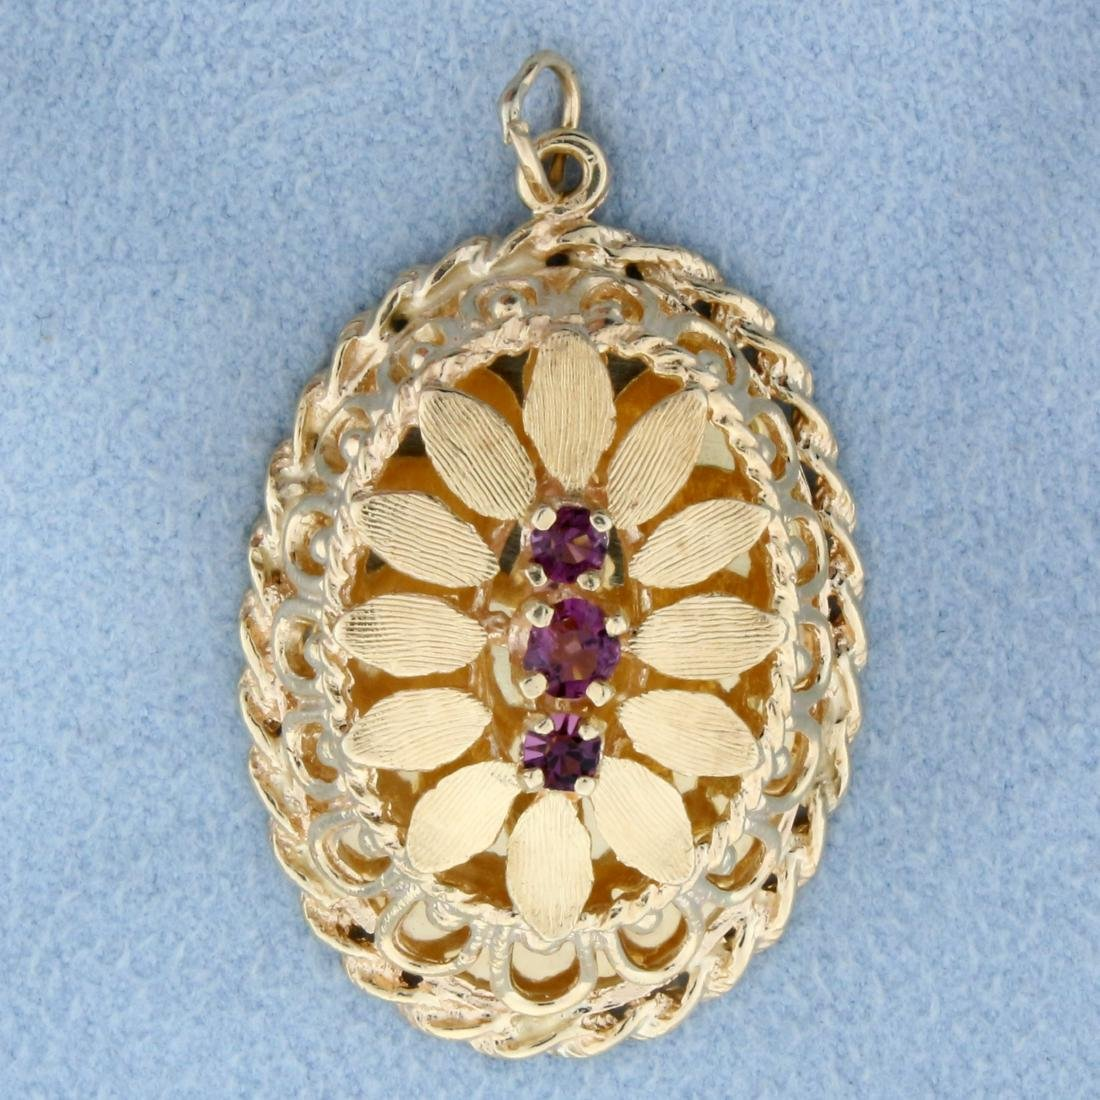 Detailed Amethyst Pendant in 14K Yellow Gold